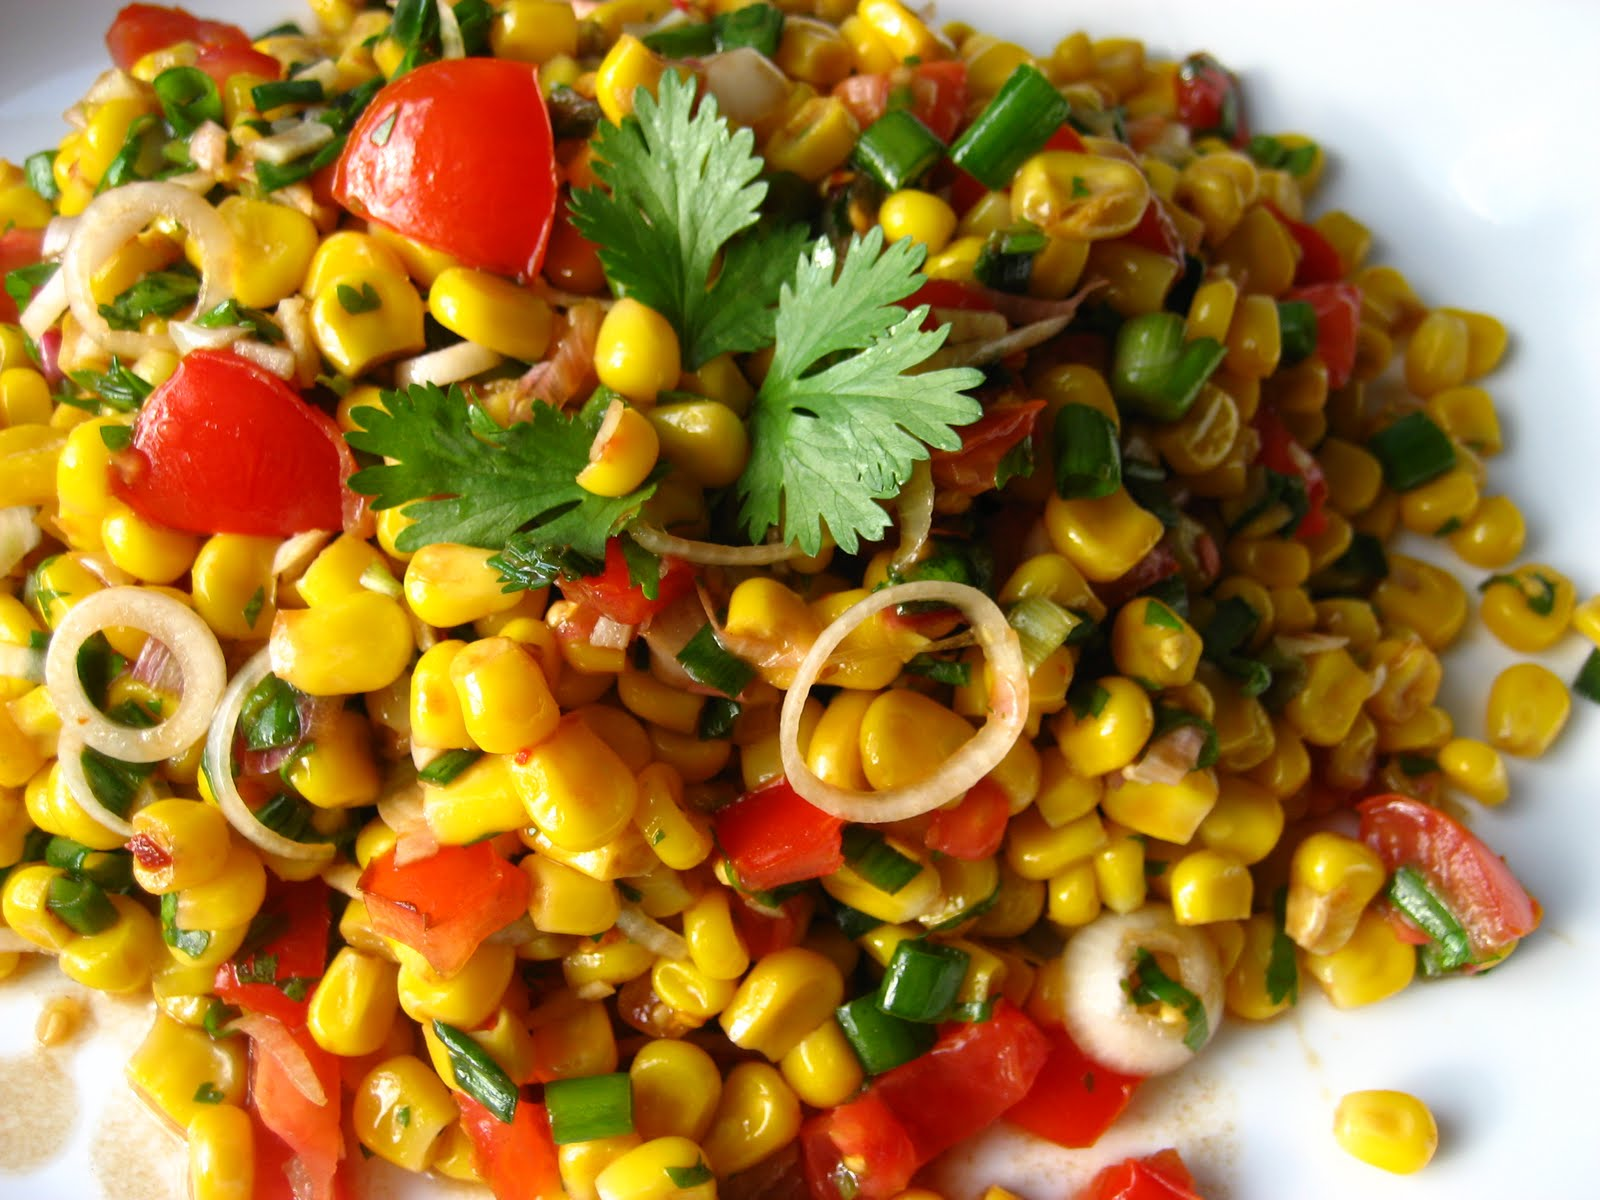 ... Cooking In Montana: Tomato and Corn Summer Salad...with Fresh Herbs